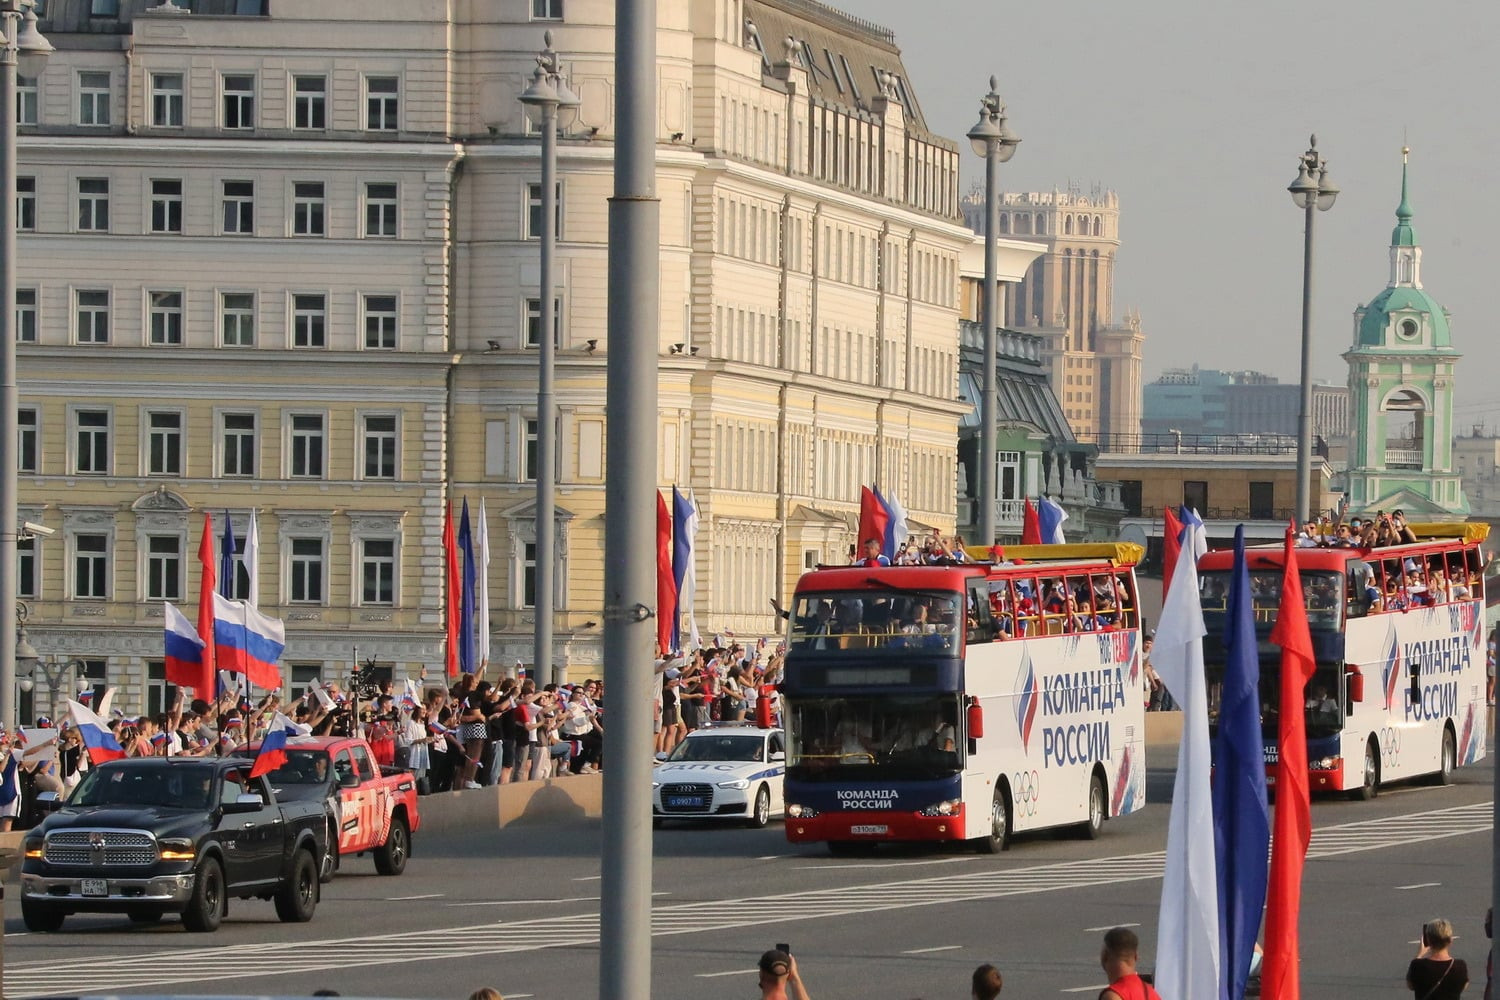 ROC Olympic team welcomed back to Moscow for Red Square celebration